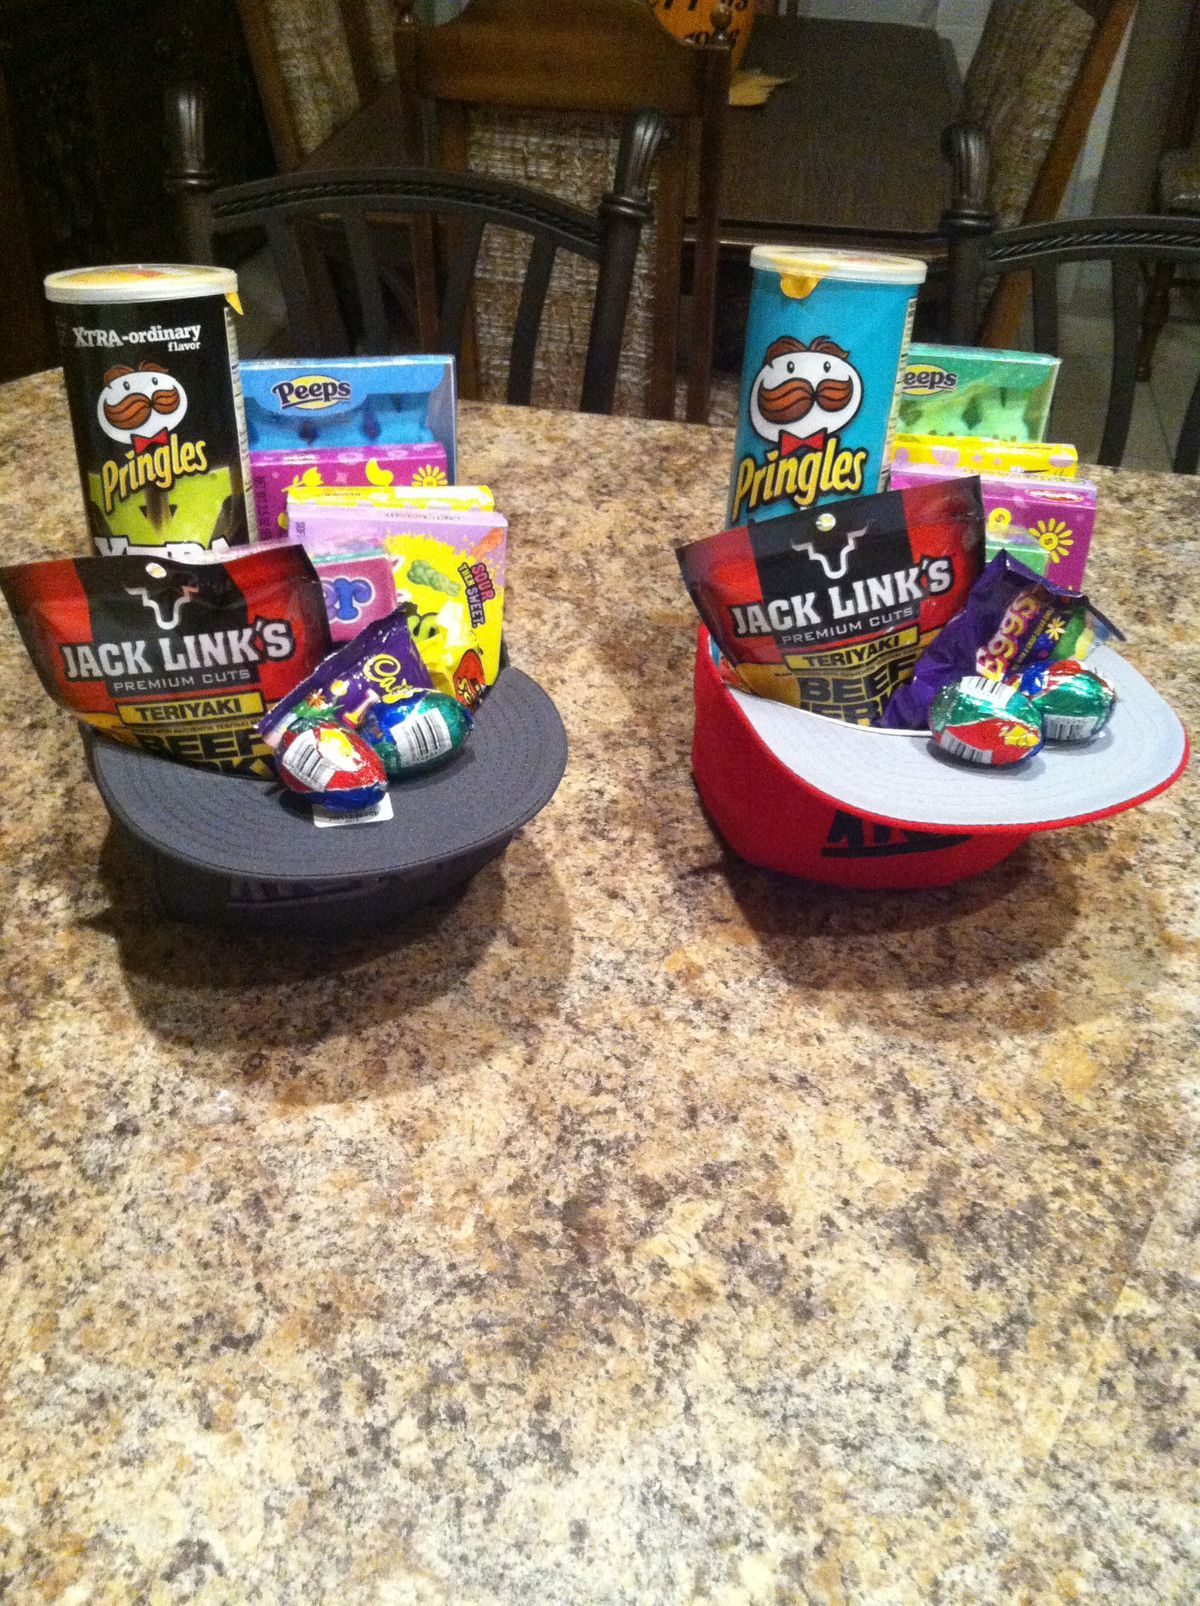 277934ec2f45313d89810e28490923c0g 12001606 pixels spring 60 awesome gifts for guys theyll actually want teen boy gift basket would be a cute easter basket for little boy with hat new swim trunks and sunglasses negle Image collections